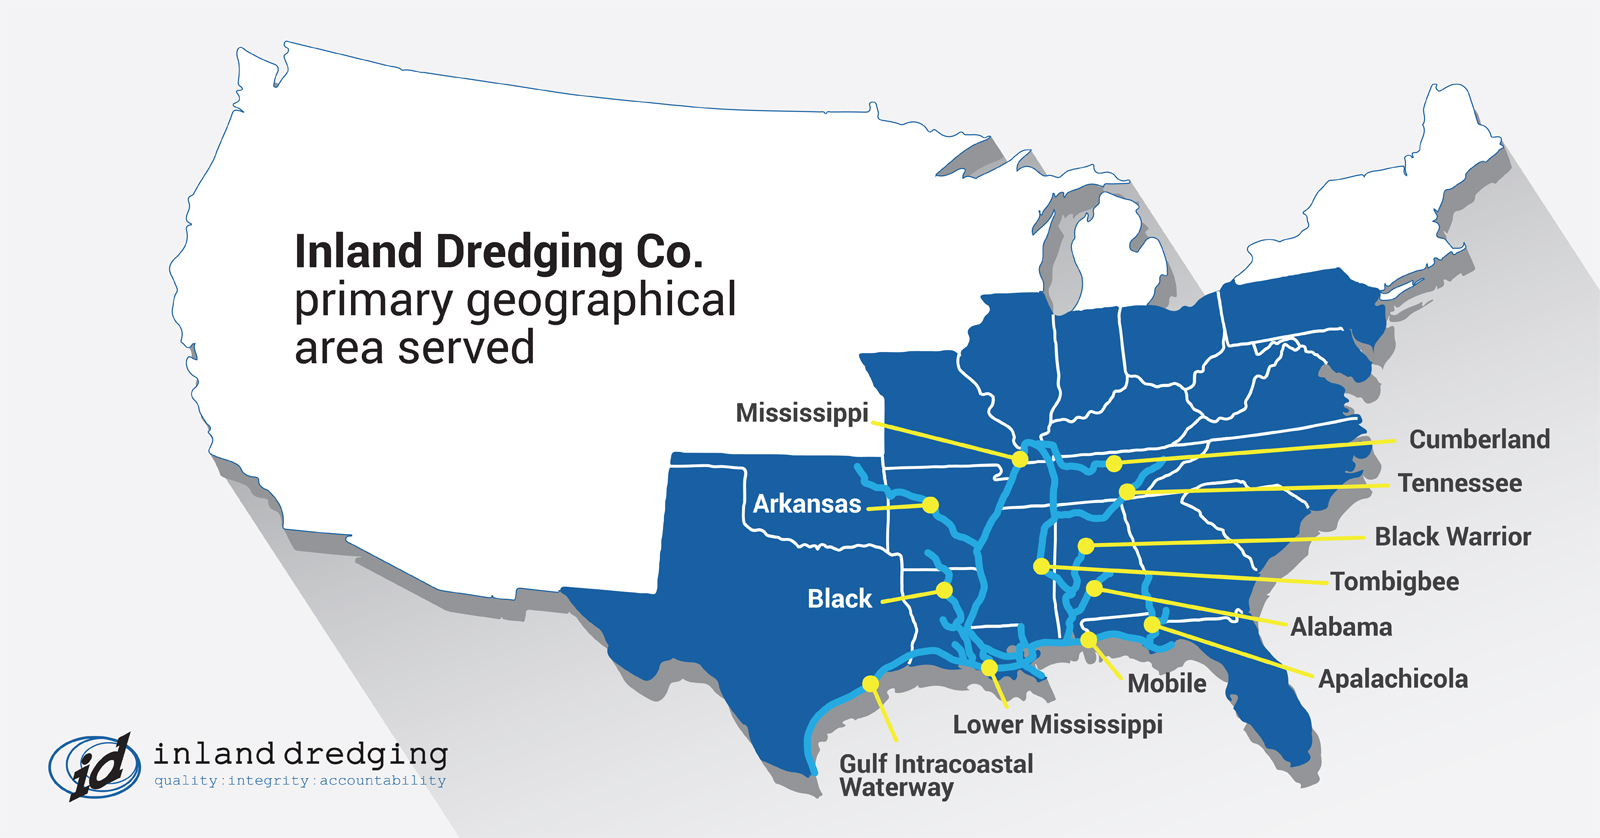 inland dredging map of service